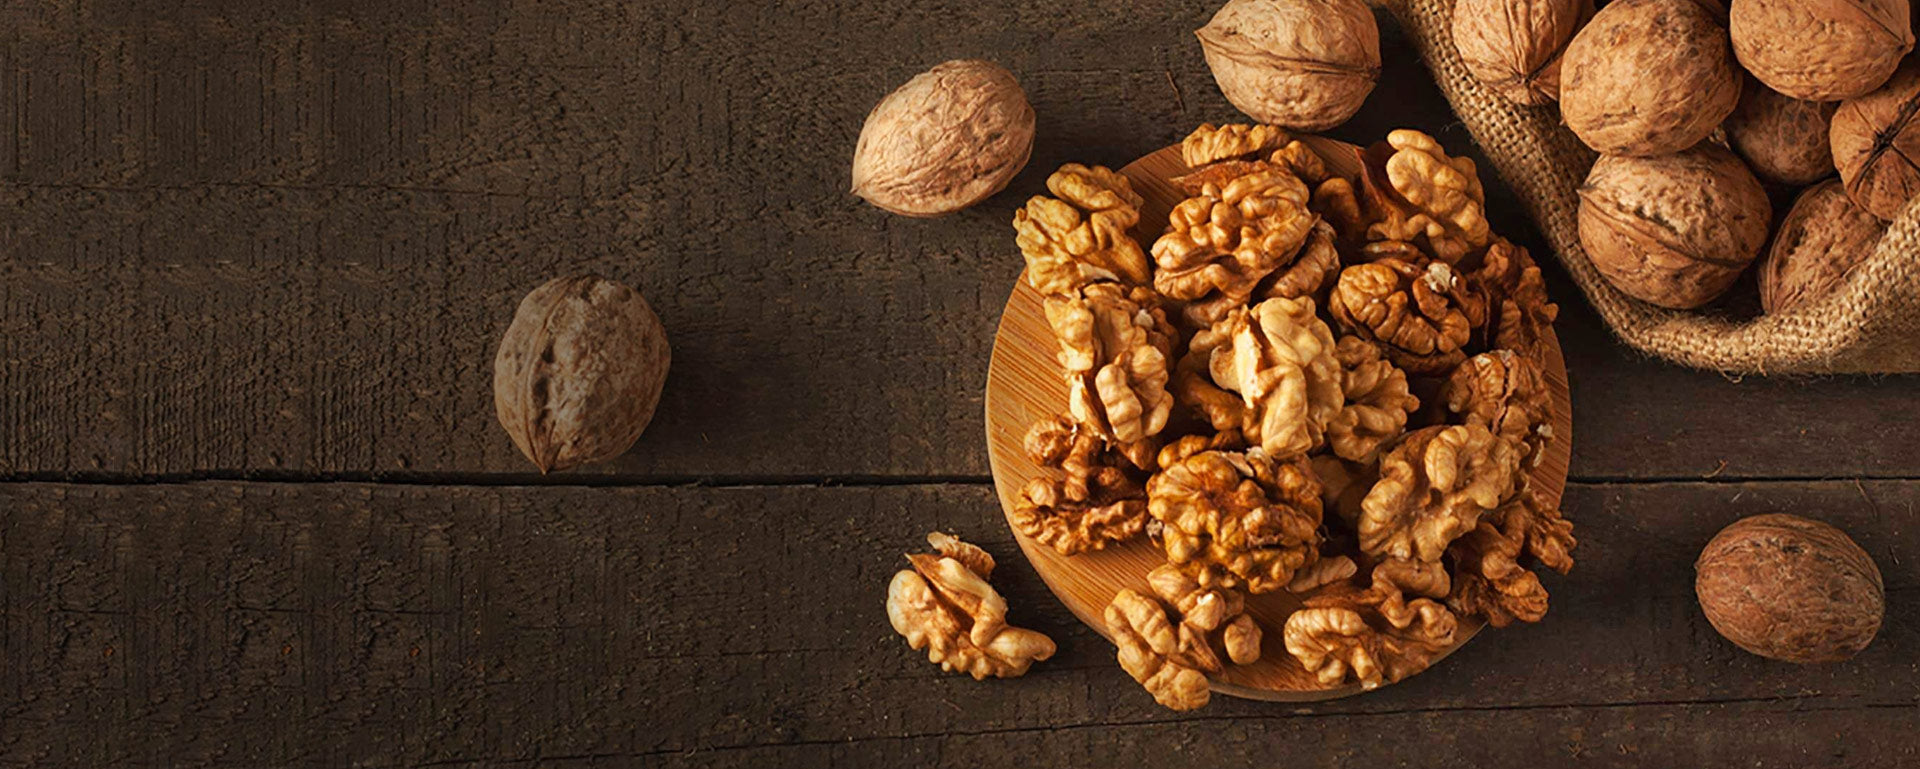 Healthy munching with brown walnut kernels